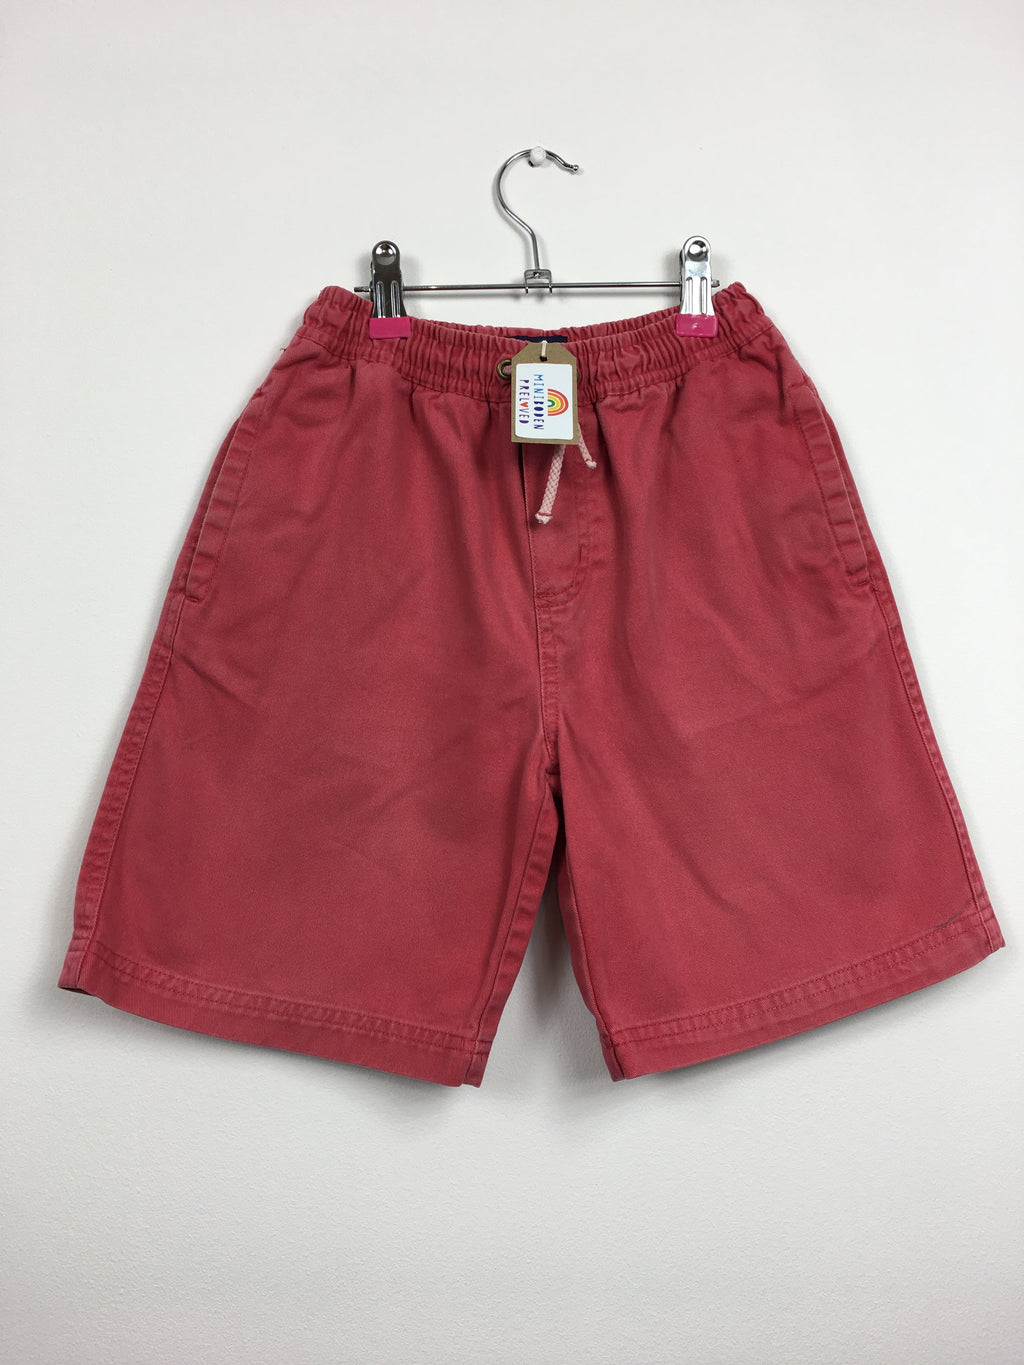 Red Thick Cotton Shorts (7-8 Years)